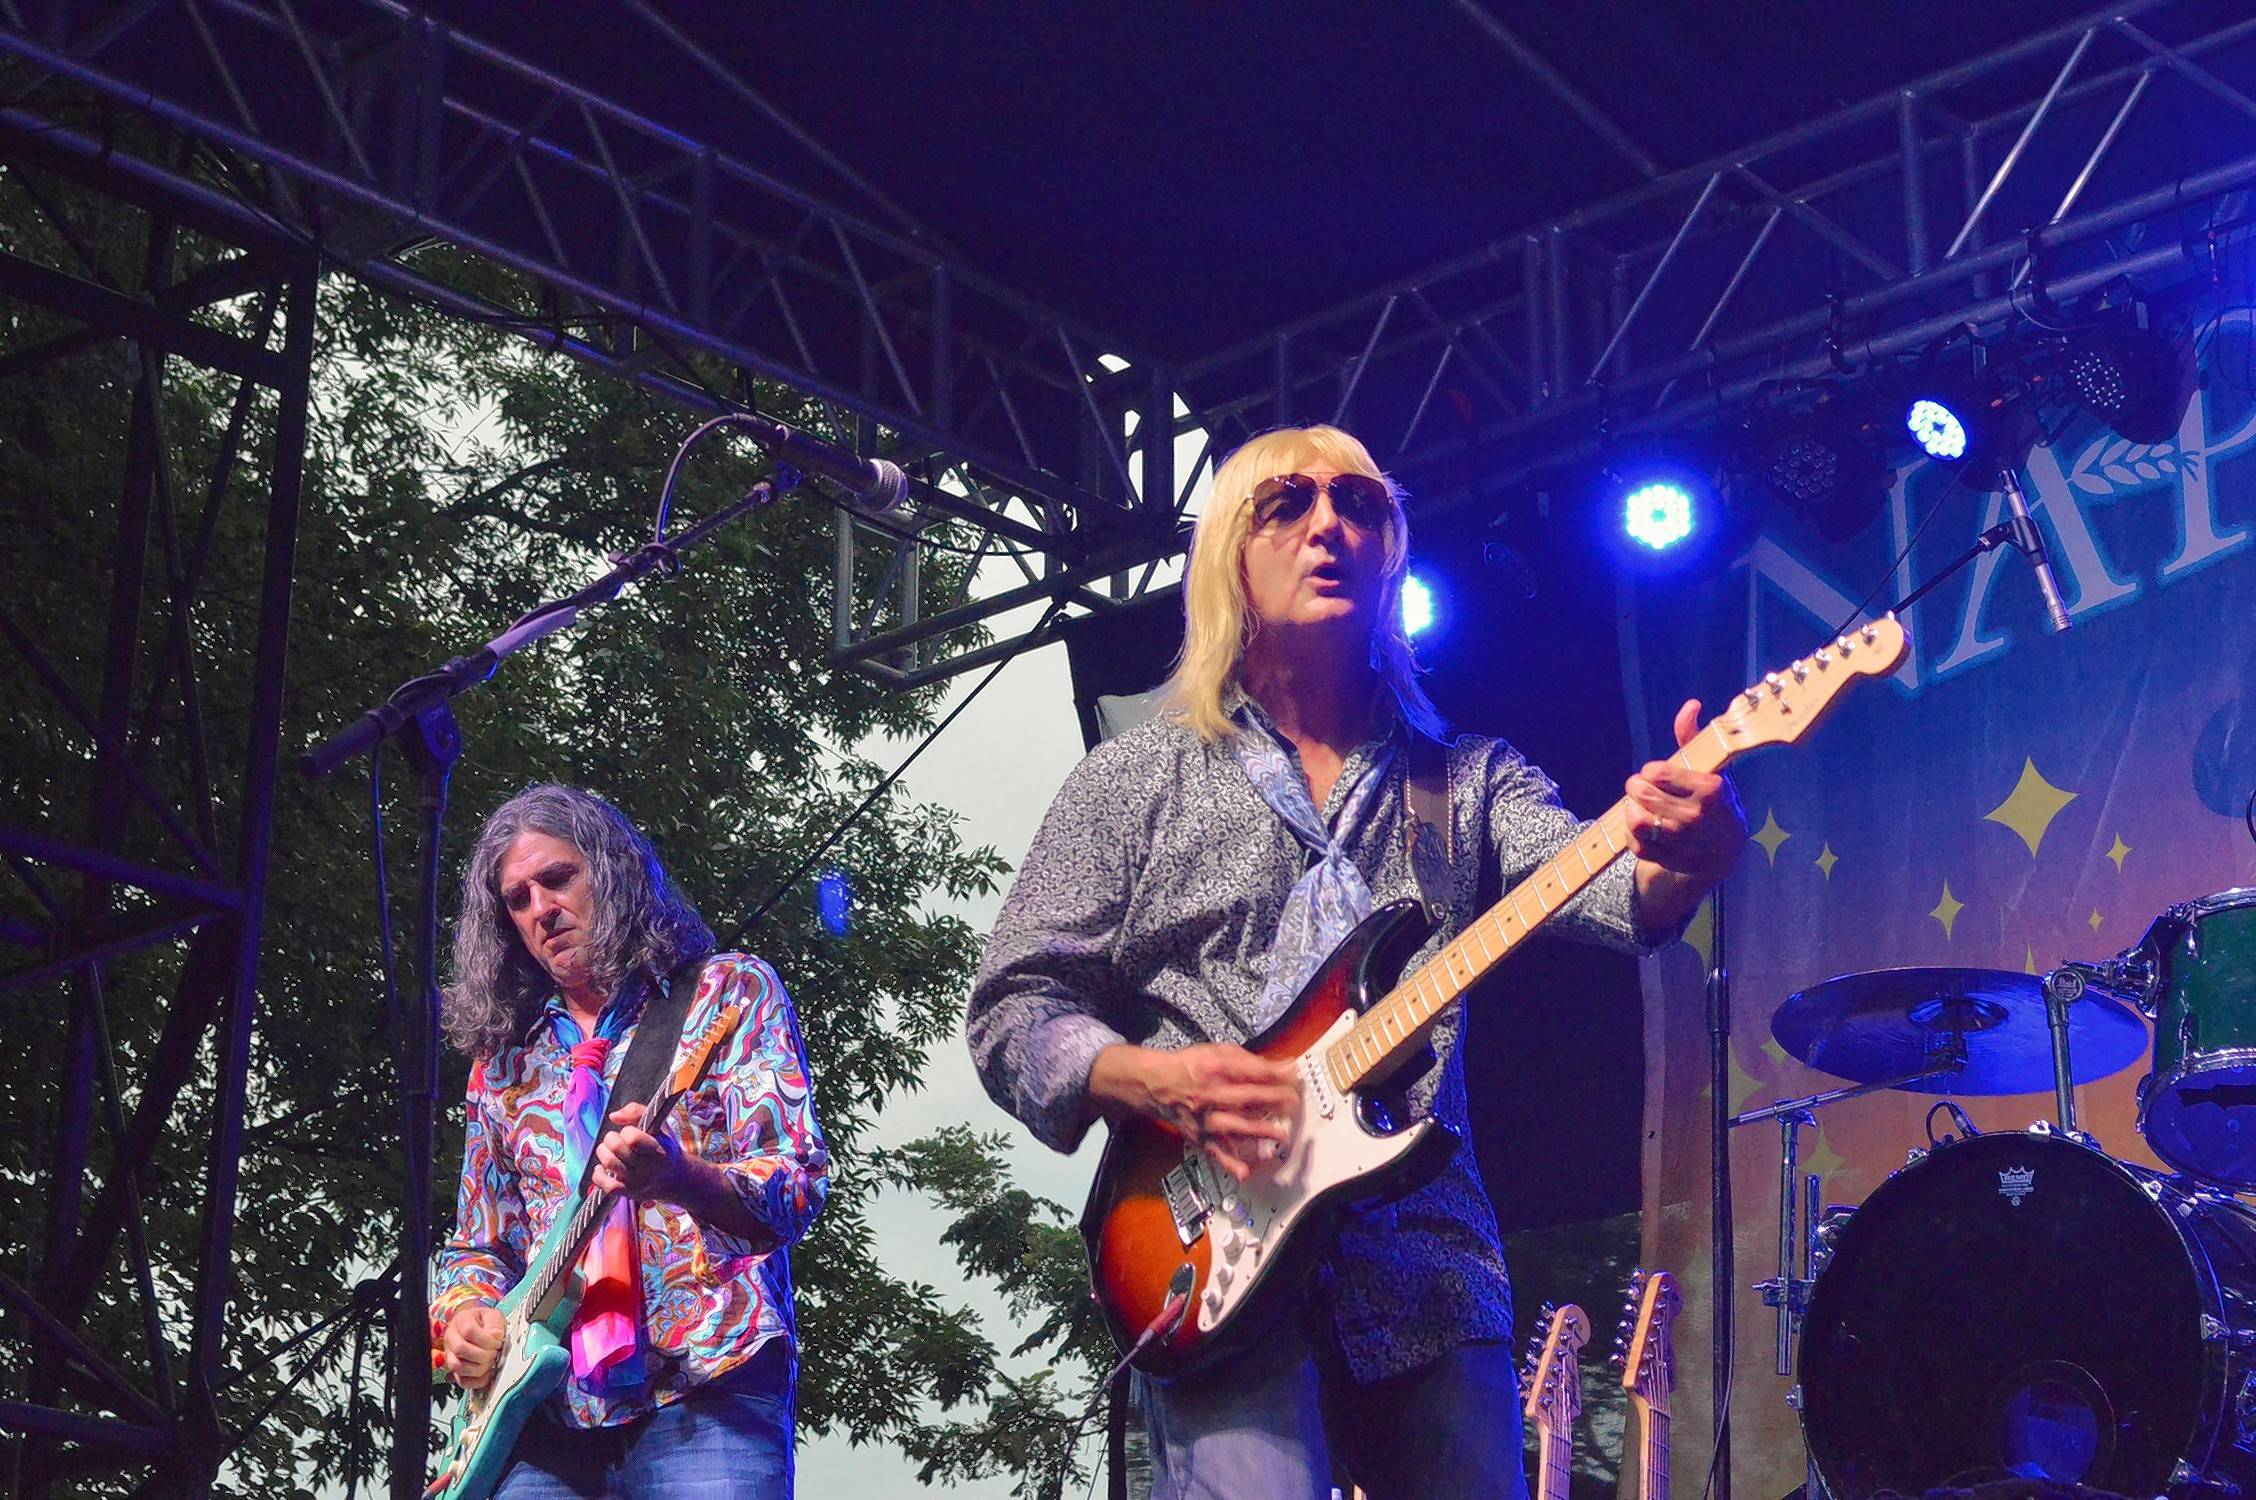 The PettyBreakers will pay tribute to the music of Tom Petty as part of 2018 summer's Naper Nights concert series.